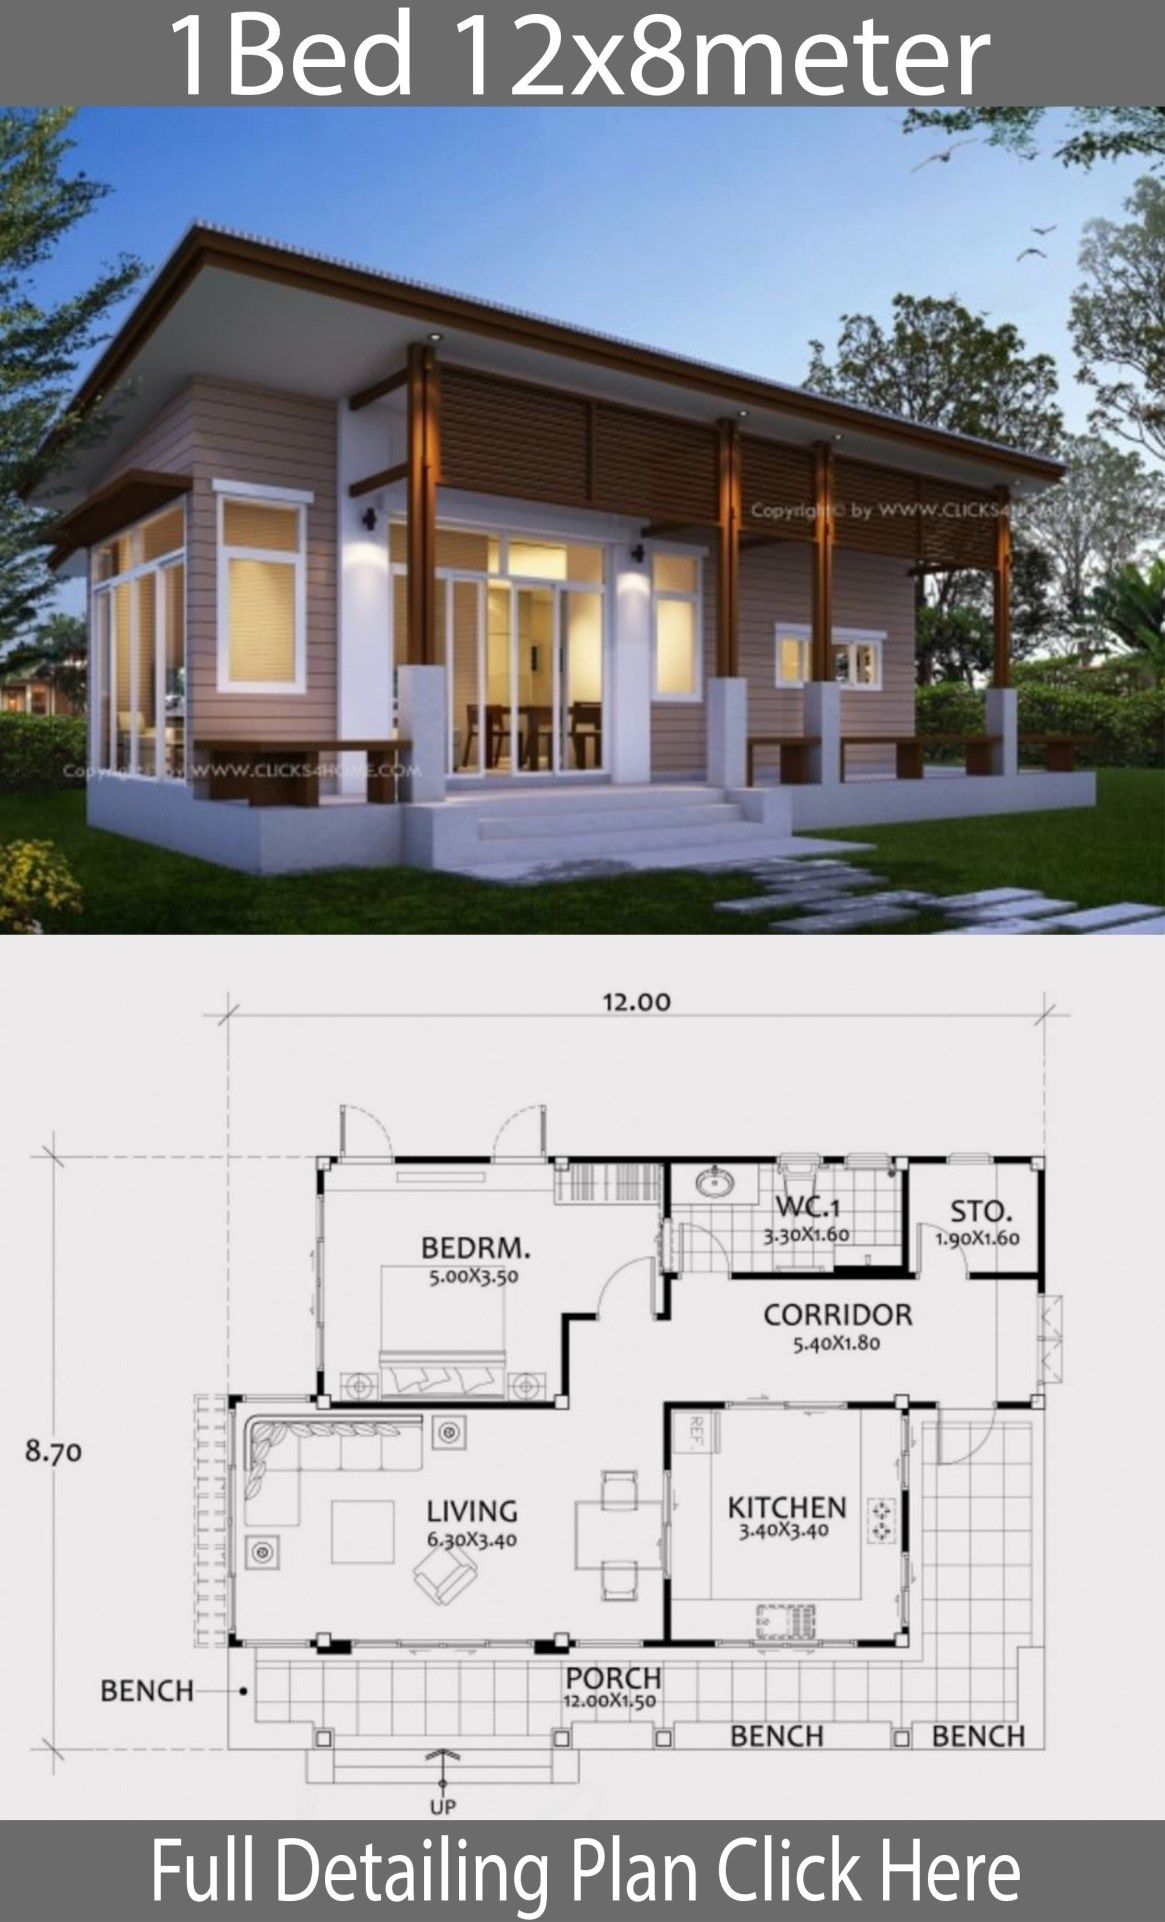 Home Design Plan 12x8m With One Bedroom Home Design With Plansearch Home Building Design Home Design Plan House Design